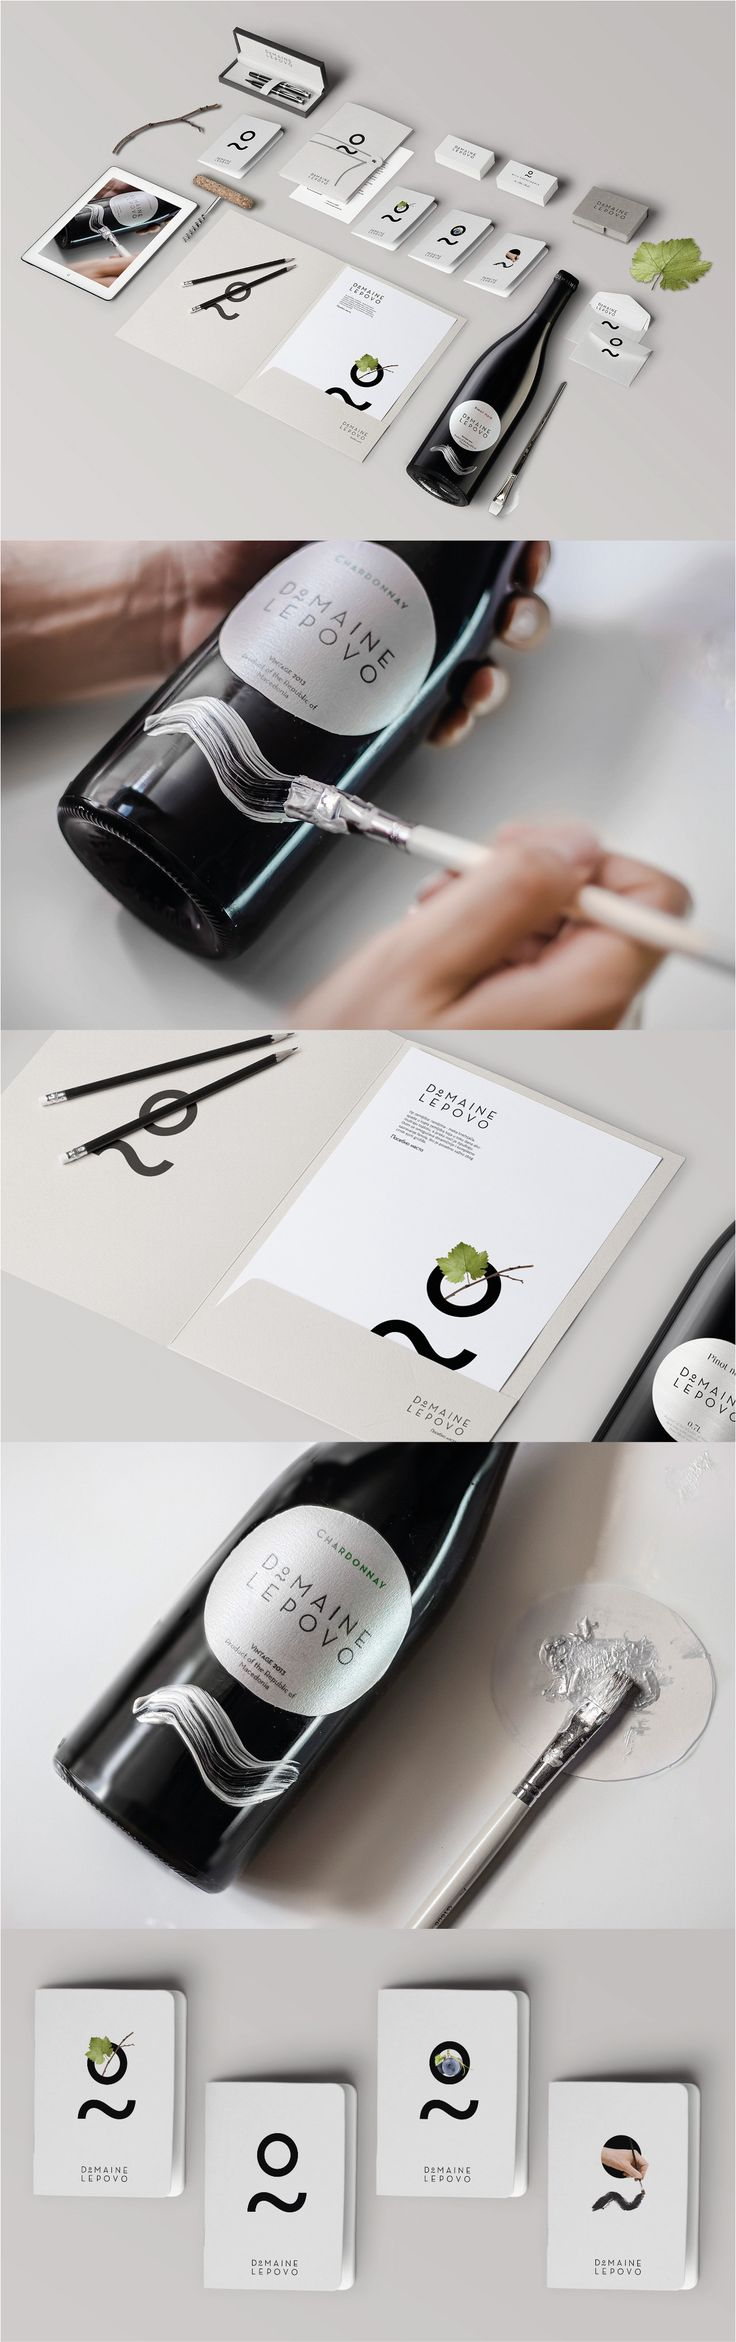 Domaine Lepovo. A wine company where perfection isn't quite good enough. #Branding #Packaging #Identity #Design